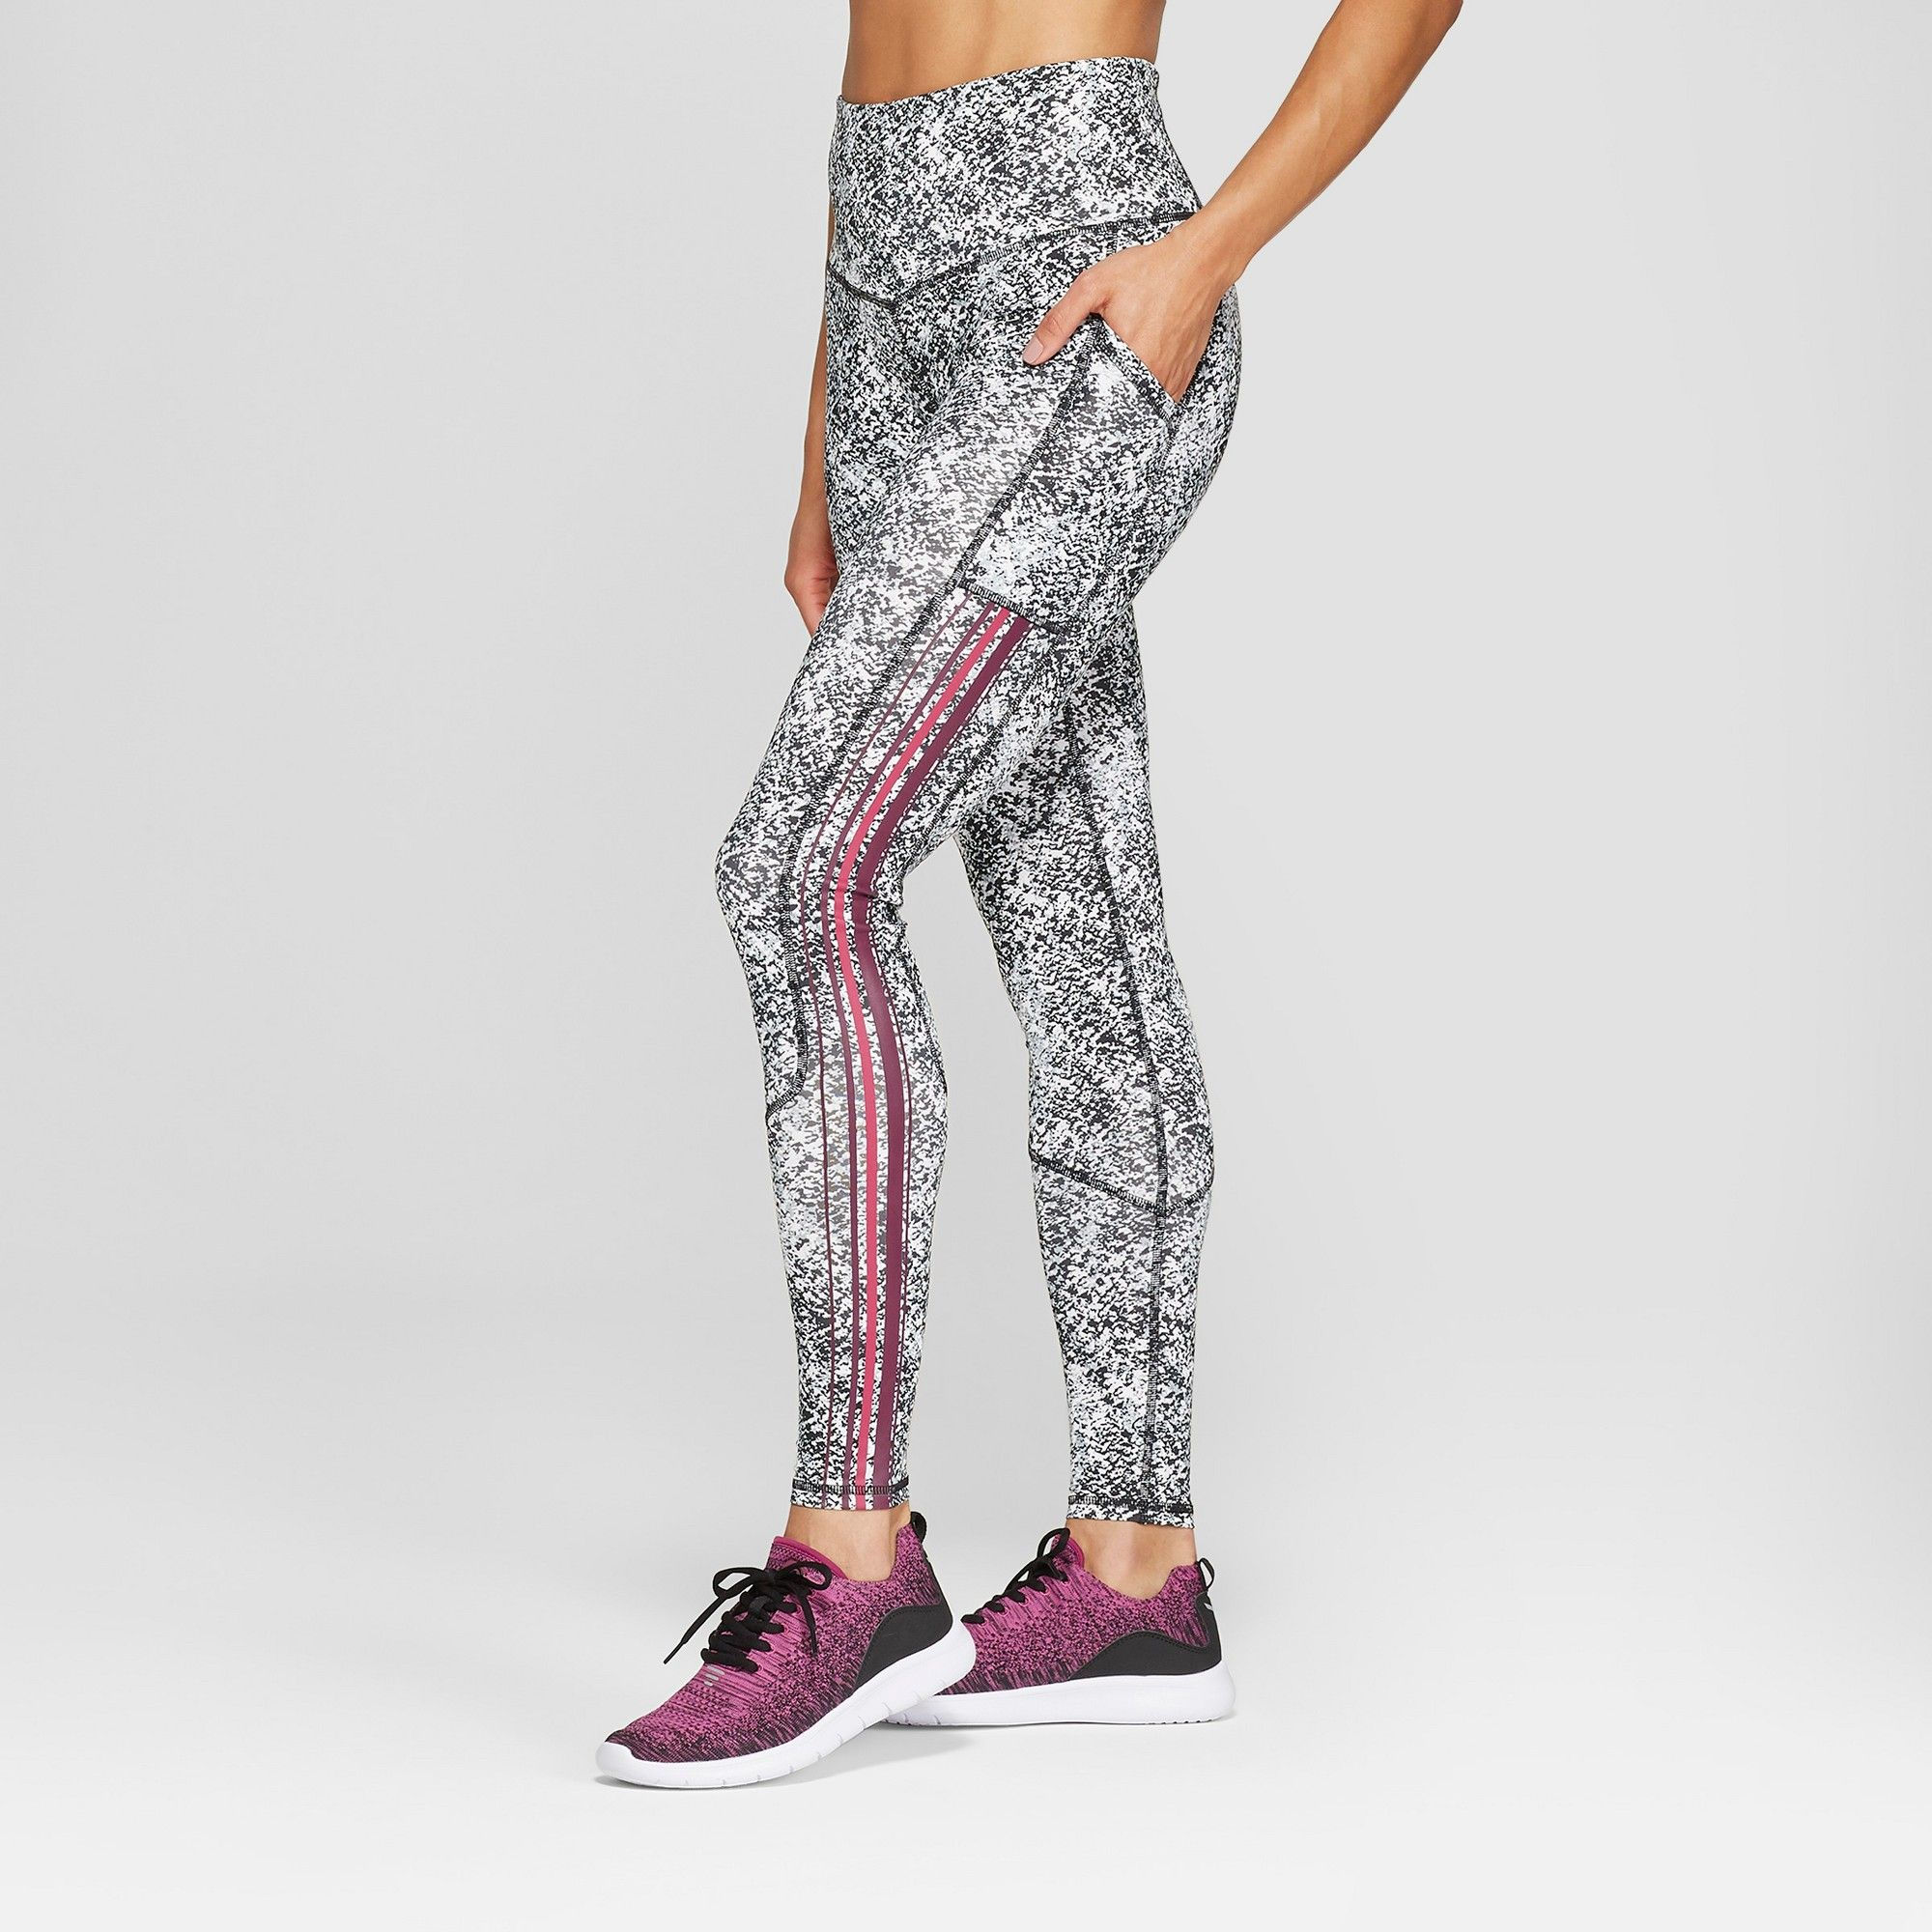 20c22a4df26fe Women's Training High-Waisted Leggings 28.5 - C9 Champion Grey Pebble Print  XL